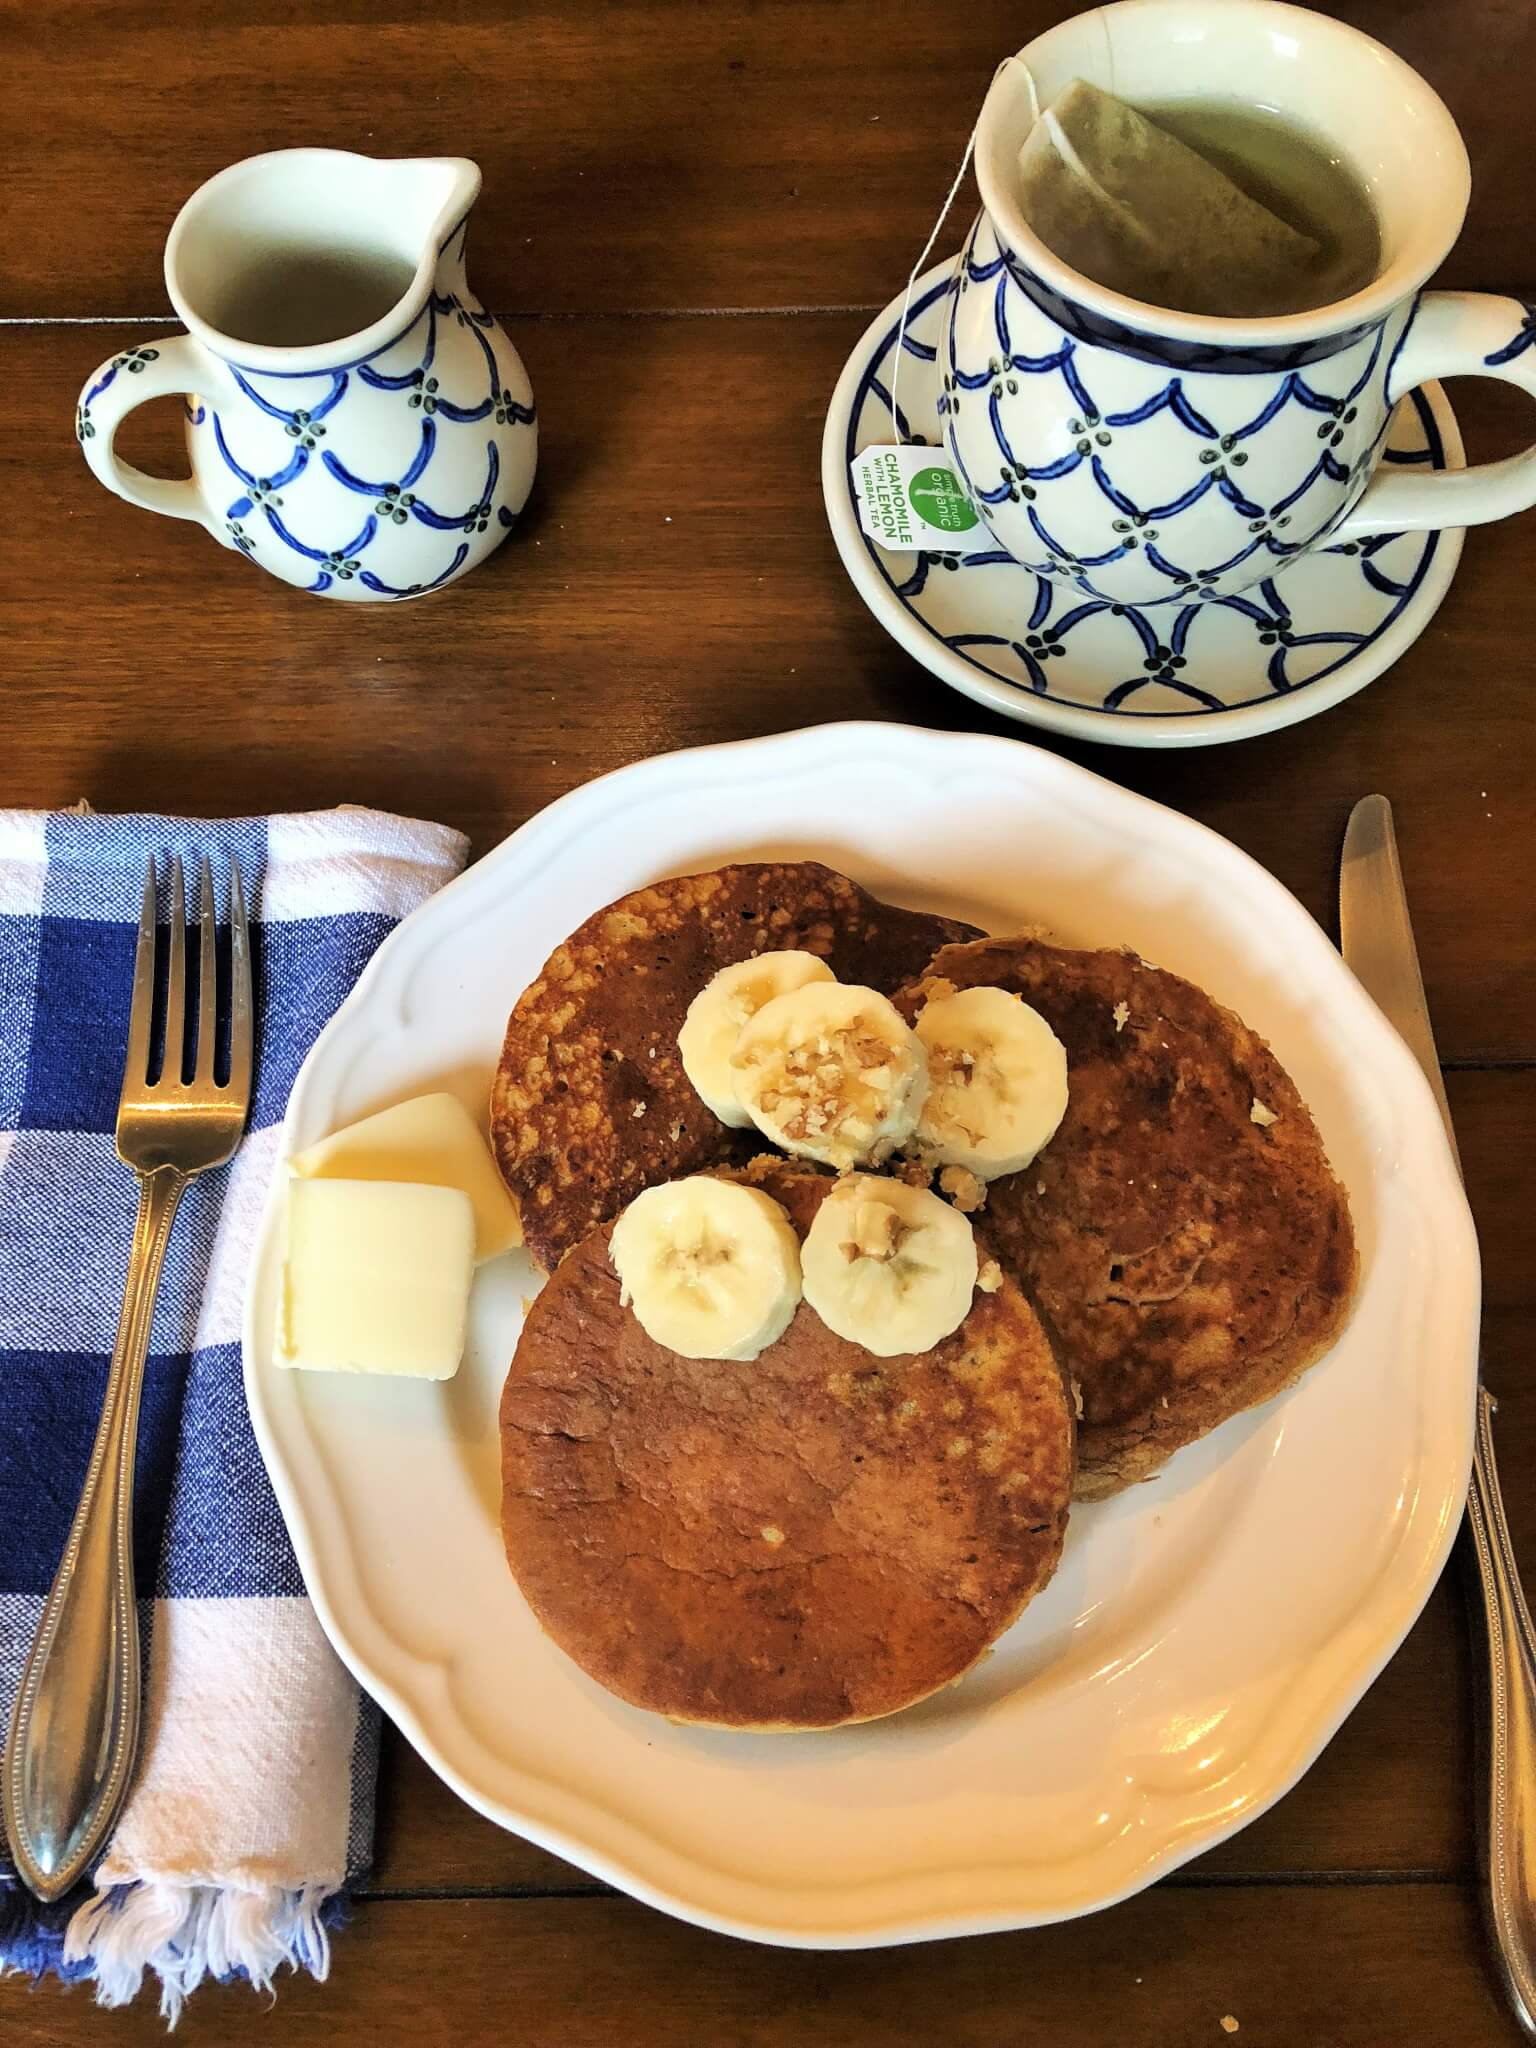 Fluffy and delicious whole wheat banana pancakes taste just like banana bread! Make a big batch a freeze leftovers for busy mornings!